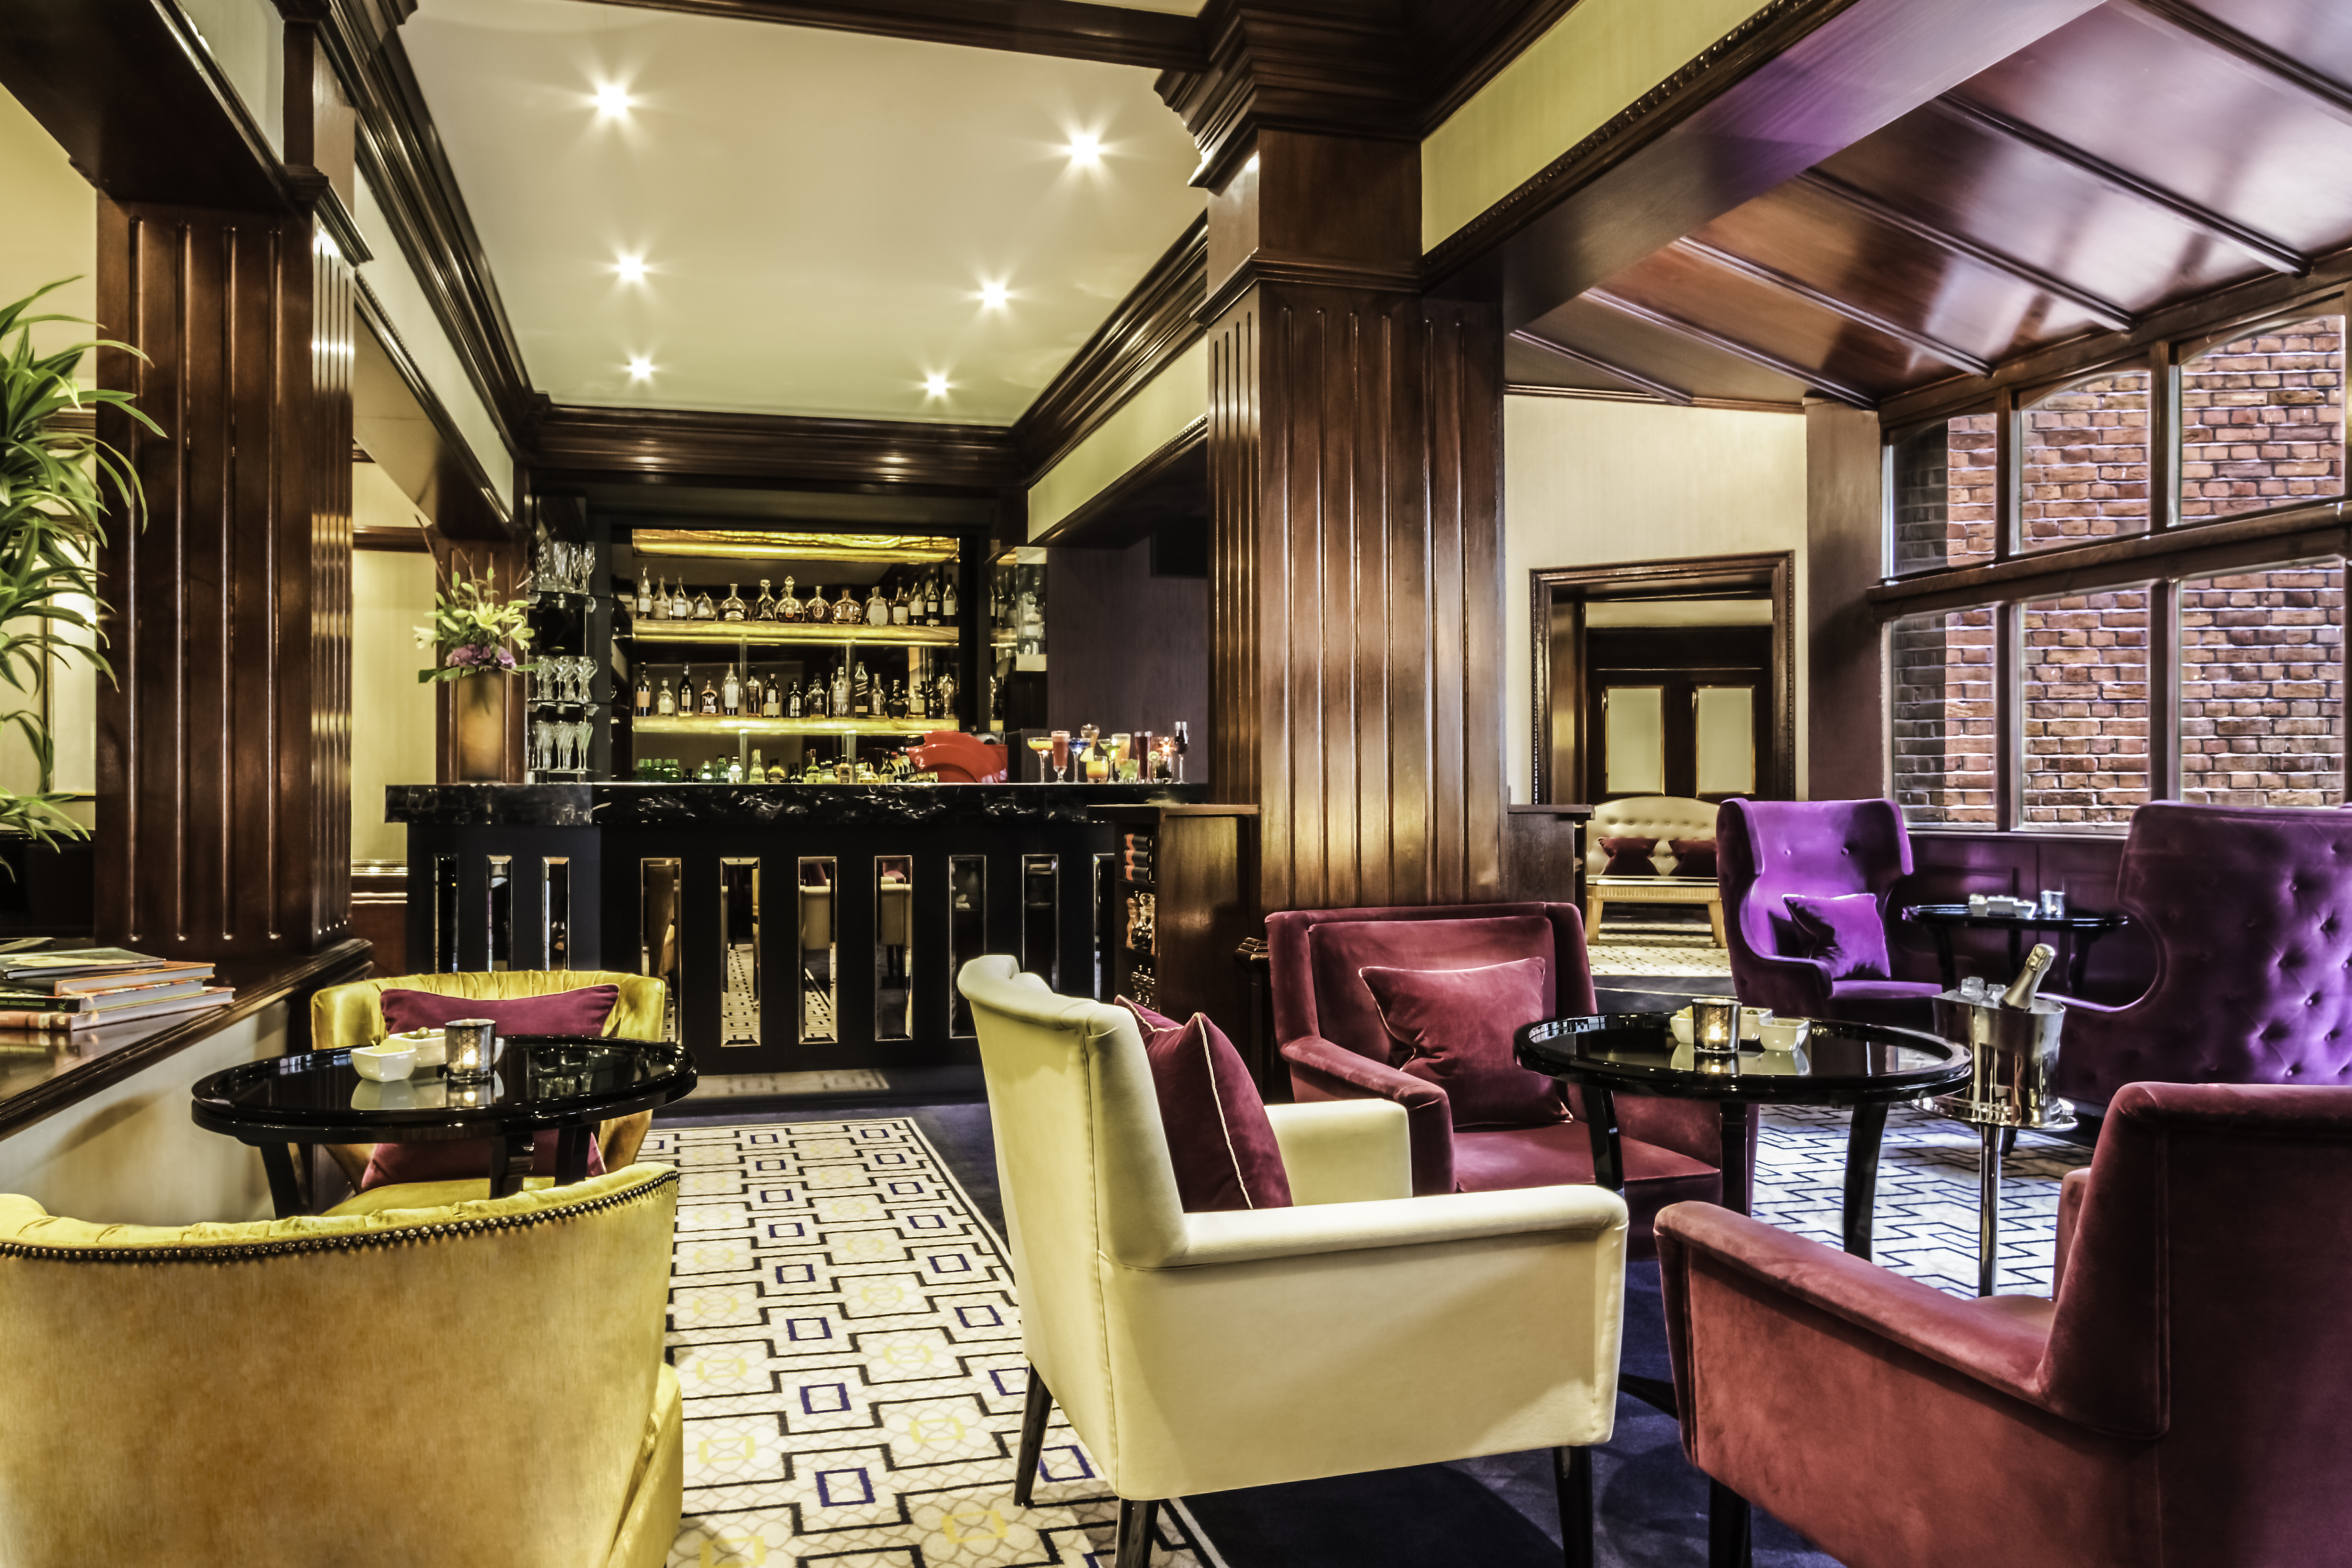 The Hamptons Bar at St. James' Court, a Taj Hotel